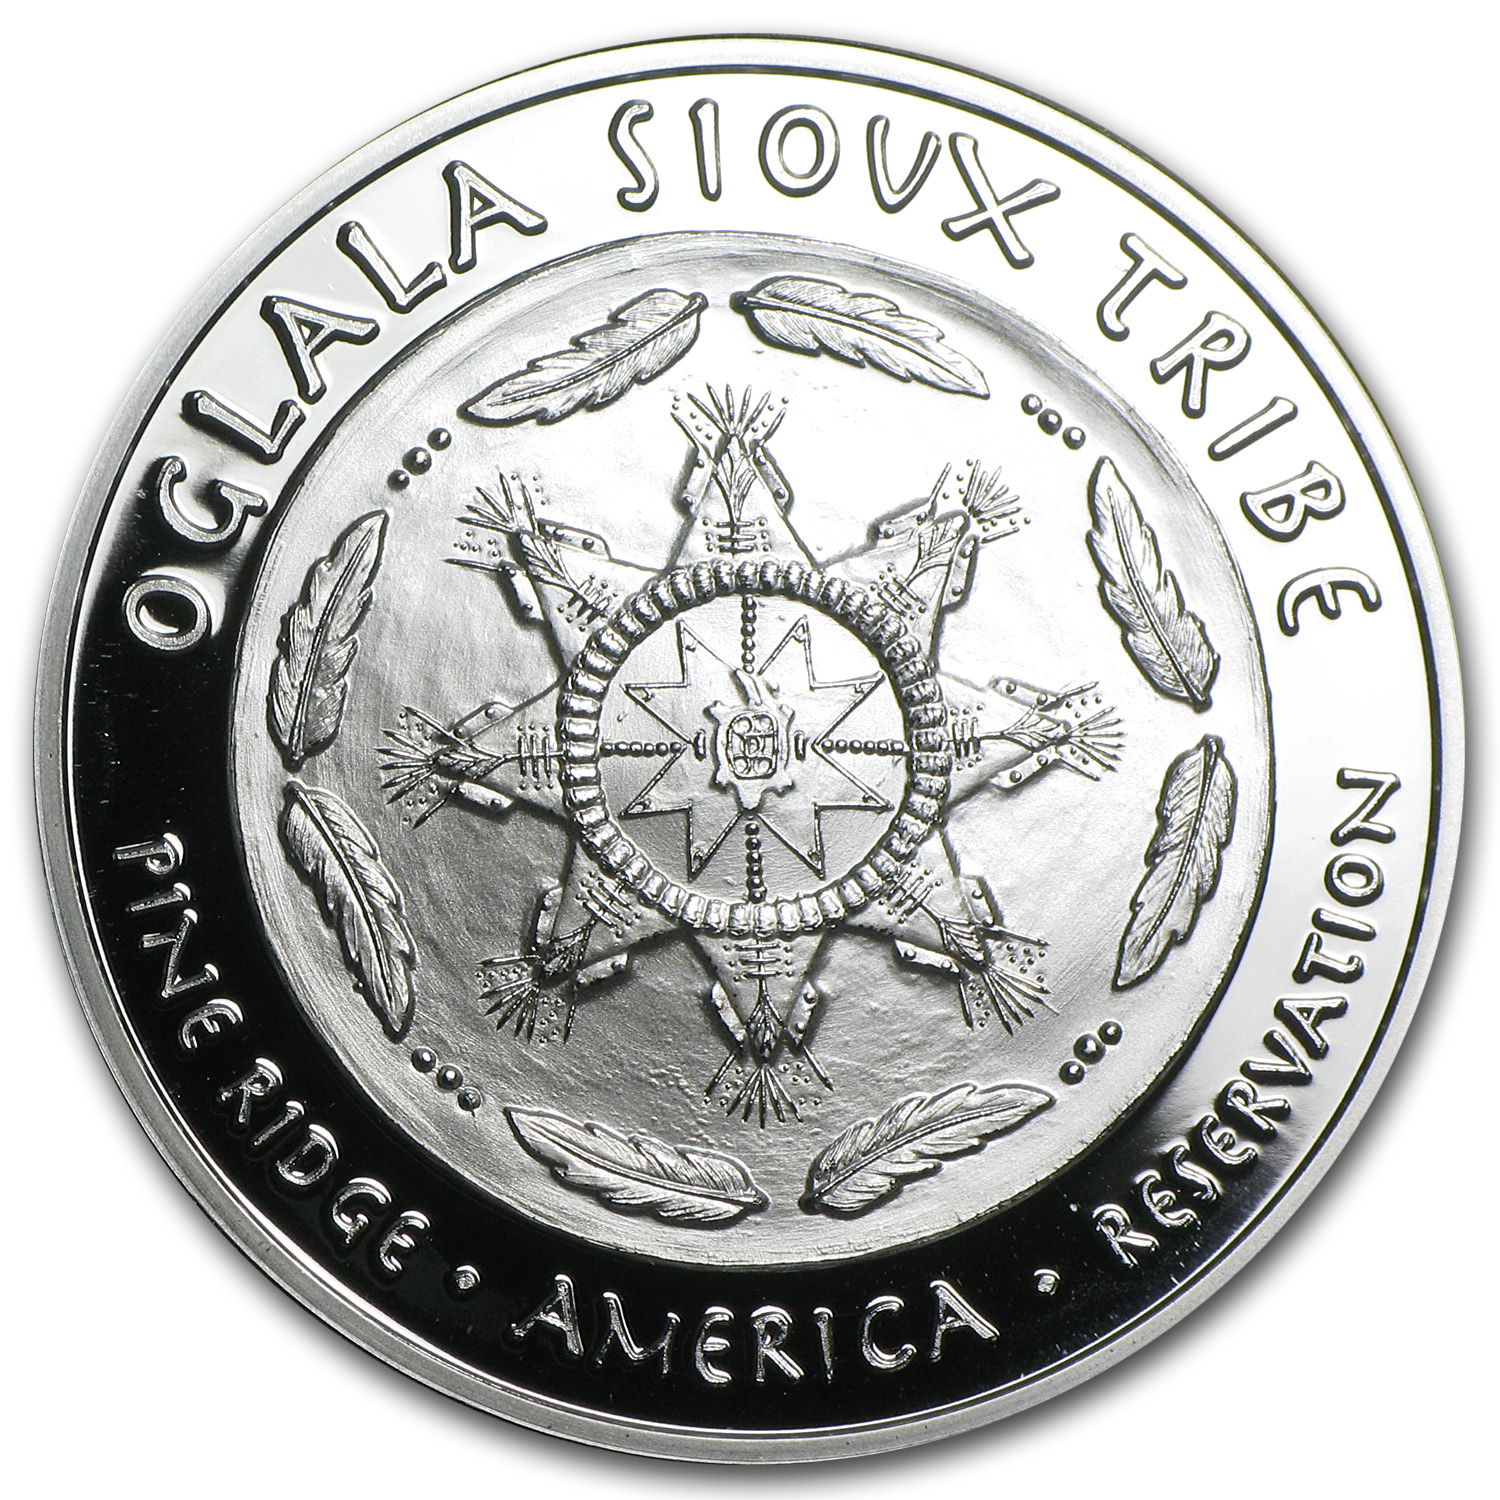 2014 Oglala Sioux Tribe 1 oz Silver Proof Coin